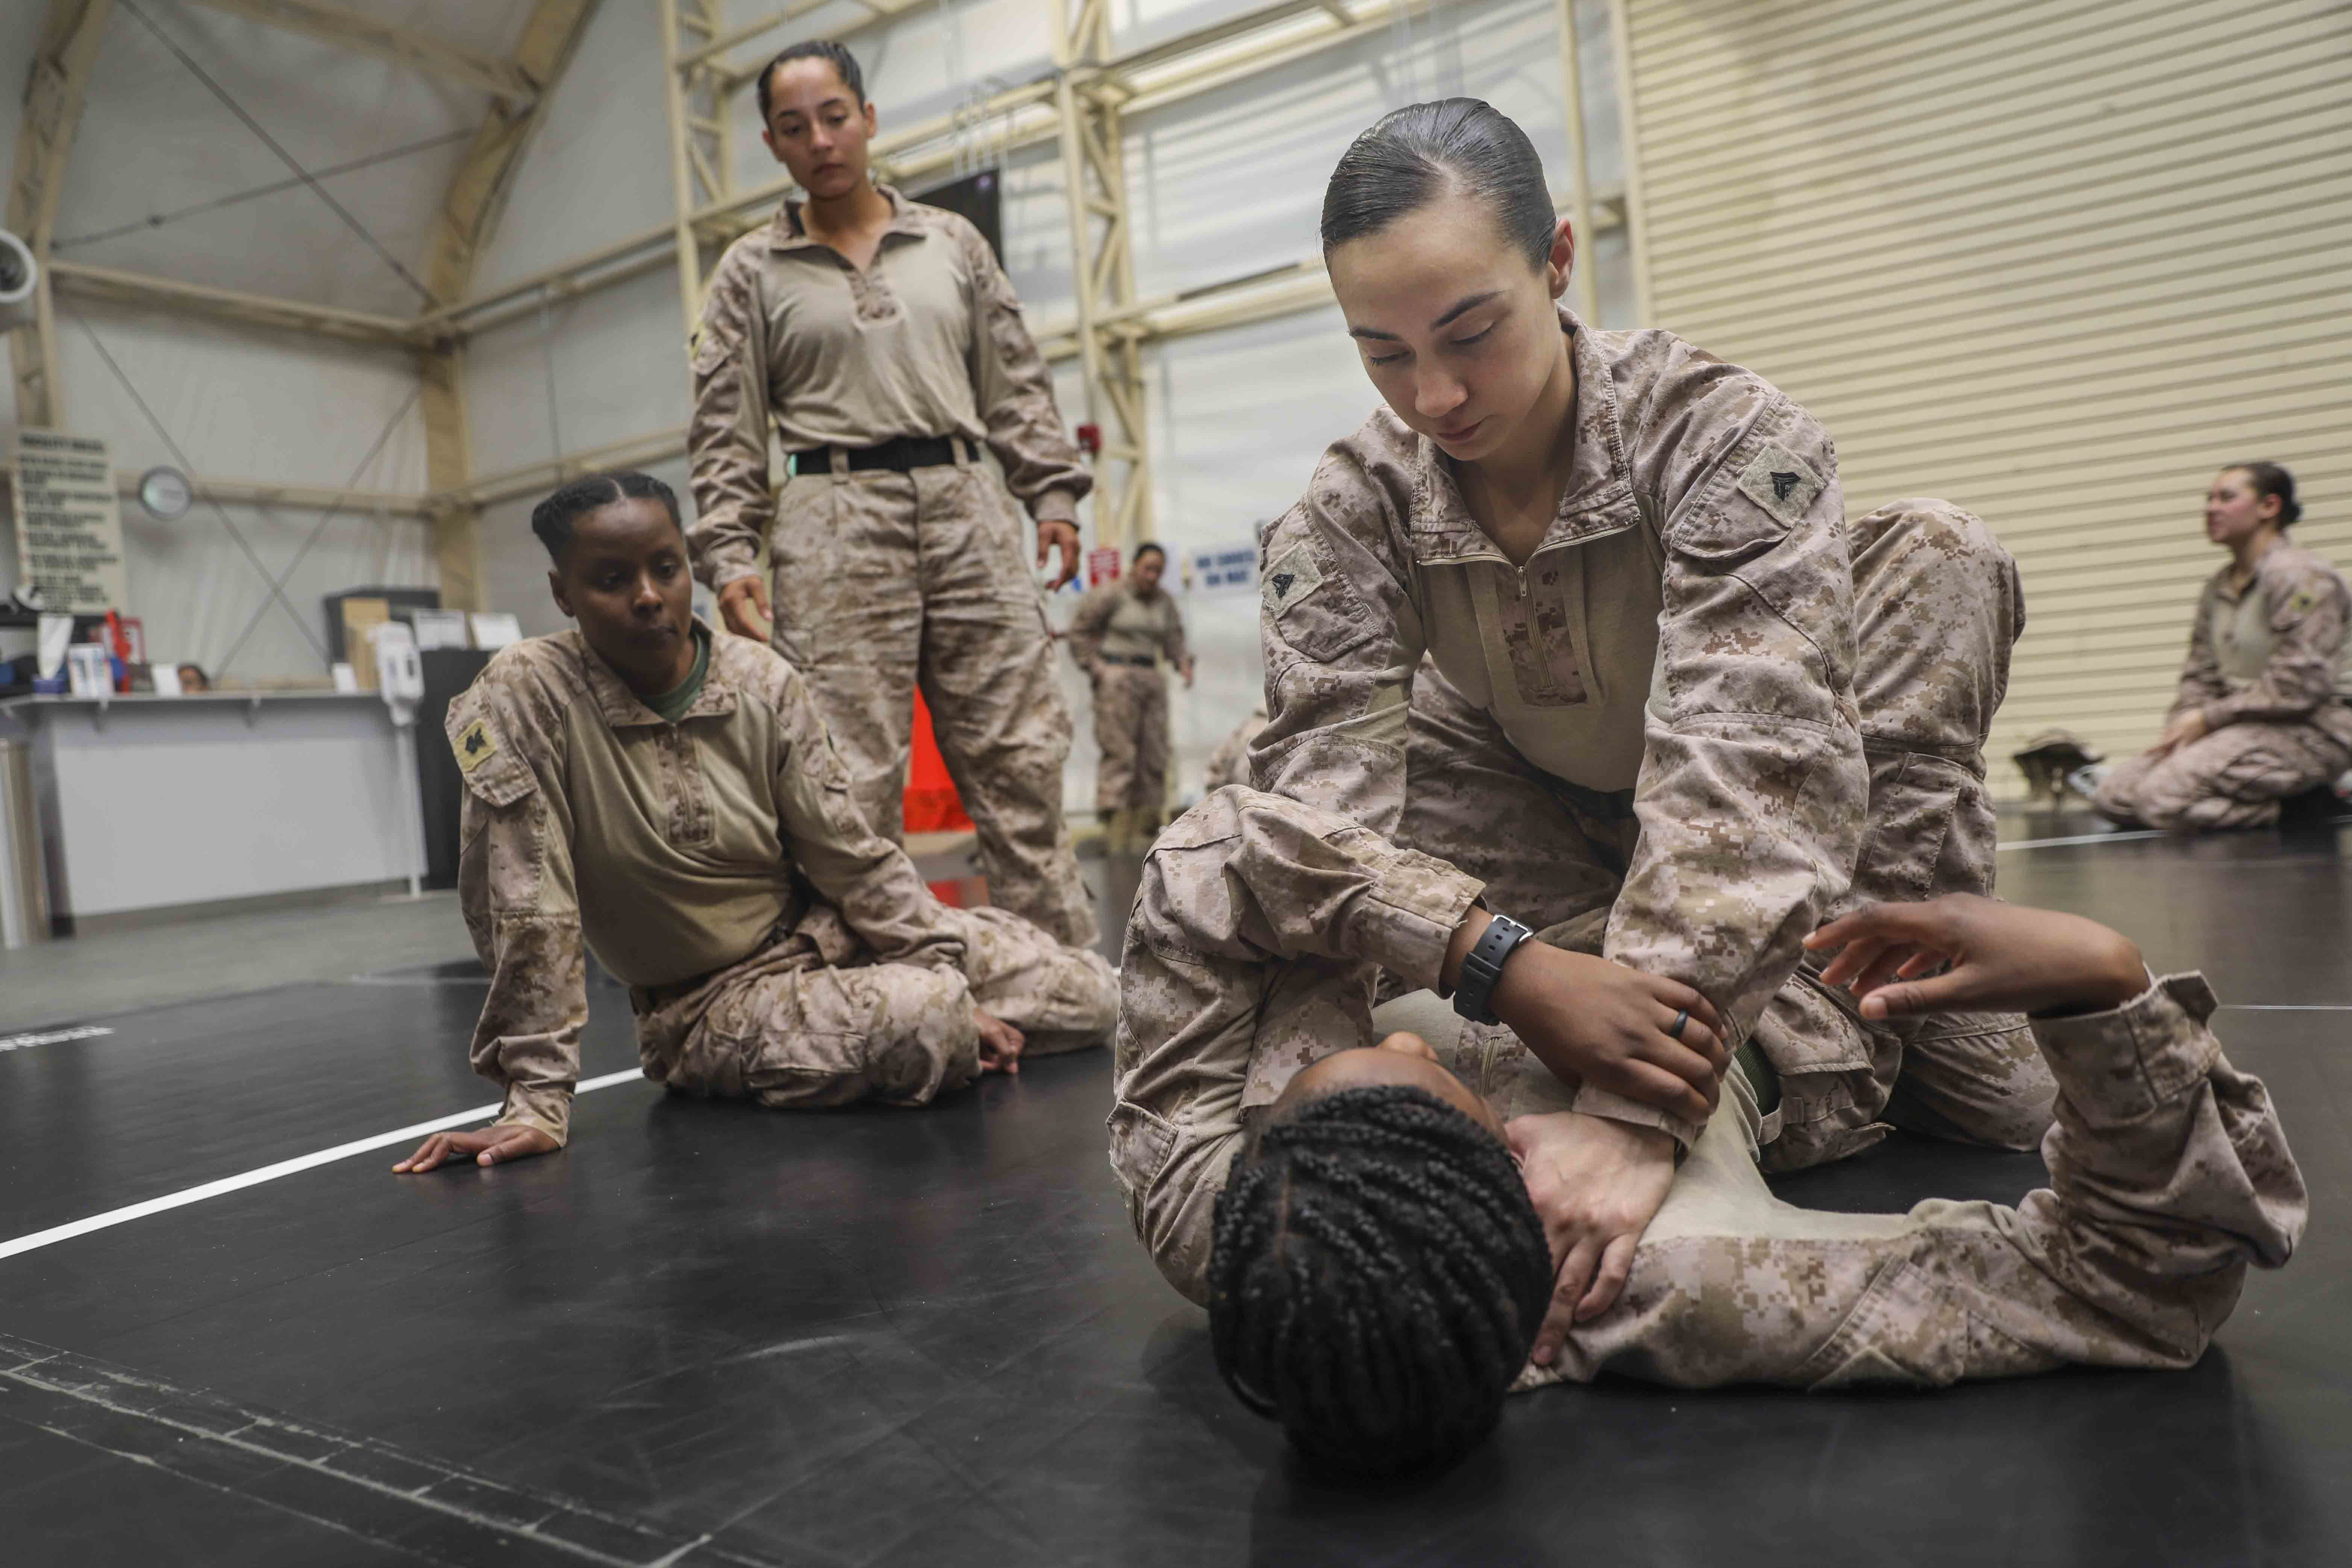 Cpl. Erin Thomas, top, a law enforcement Marine, and Cpl. Damionia Lott, an administrative specialist, practice Marine Corps Martial Arts Program techniques as a part of training at Camp Buehring in Kuwait on April 10, 2019. (Cpl. Tawanya Norwood/Marine Corps)